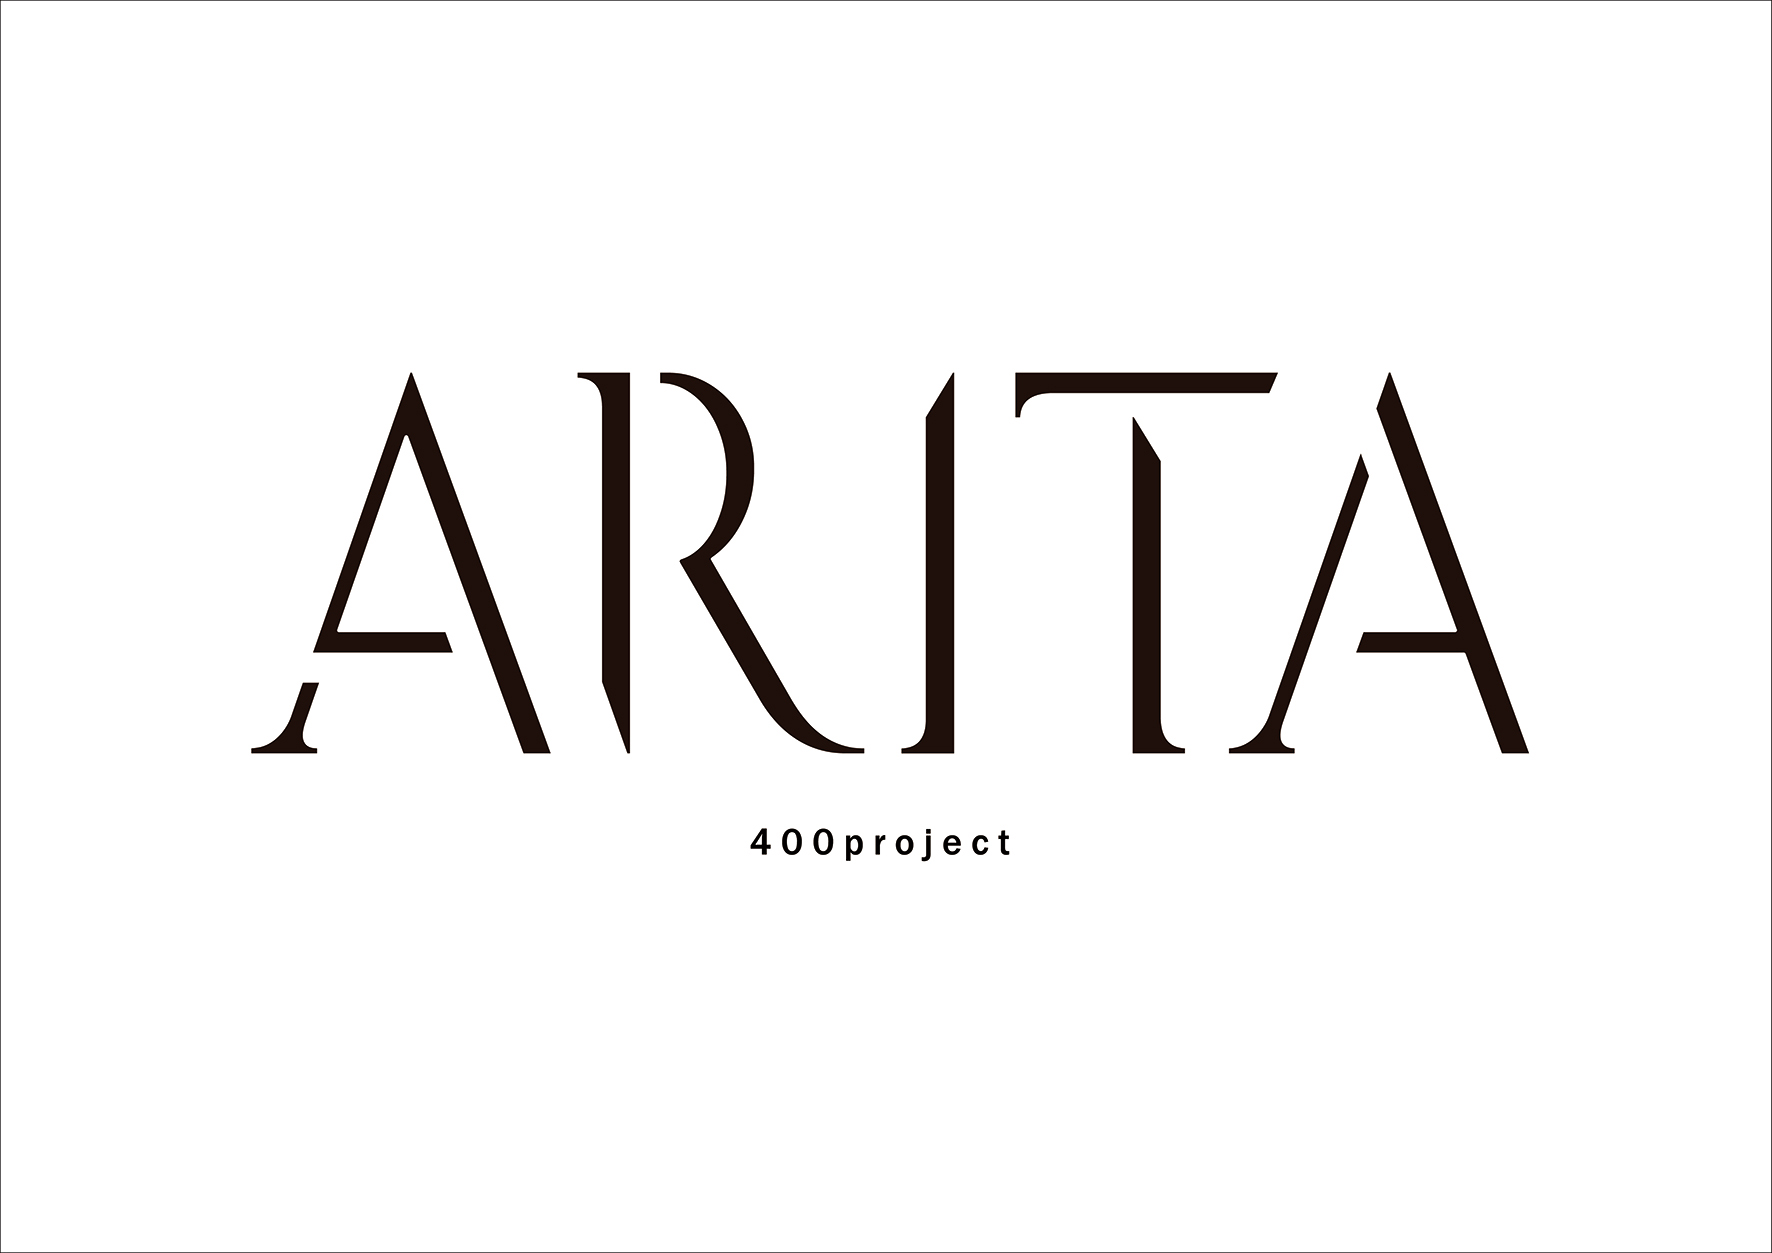 arita400project-logo